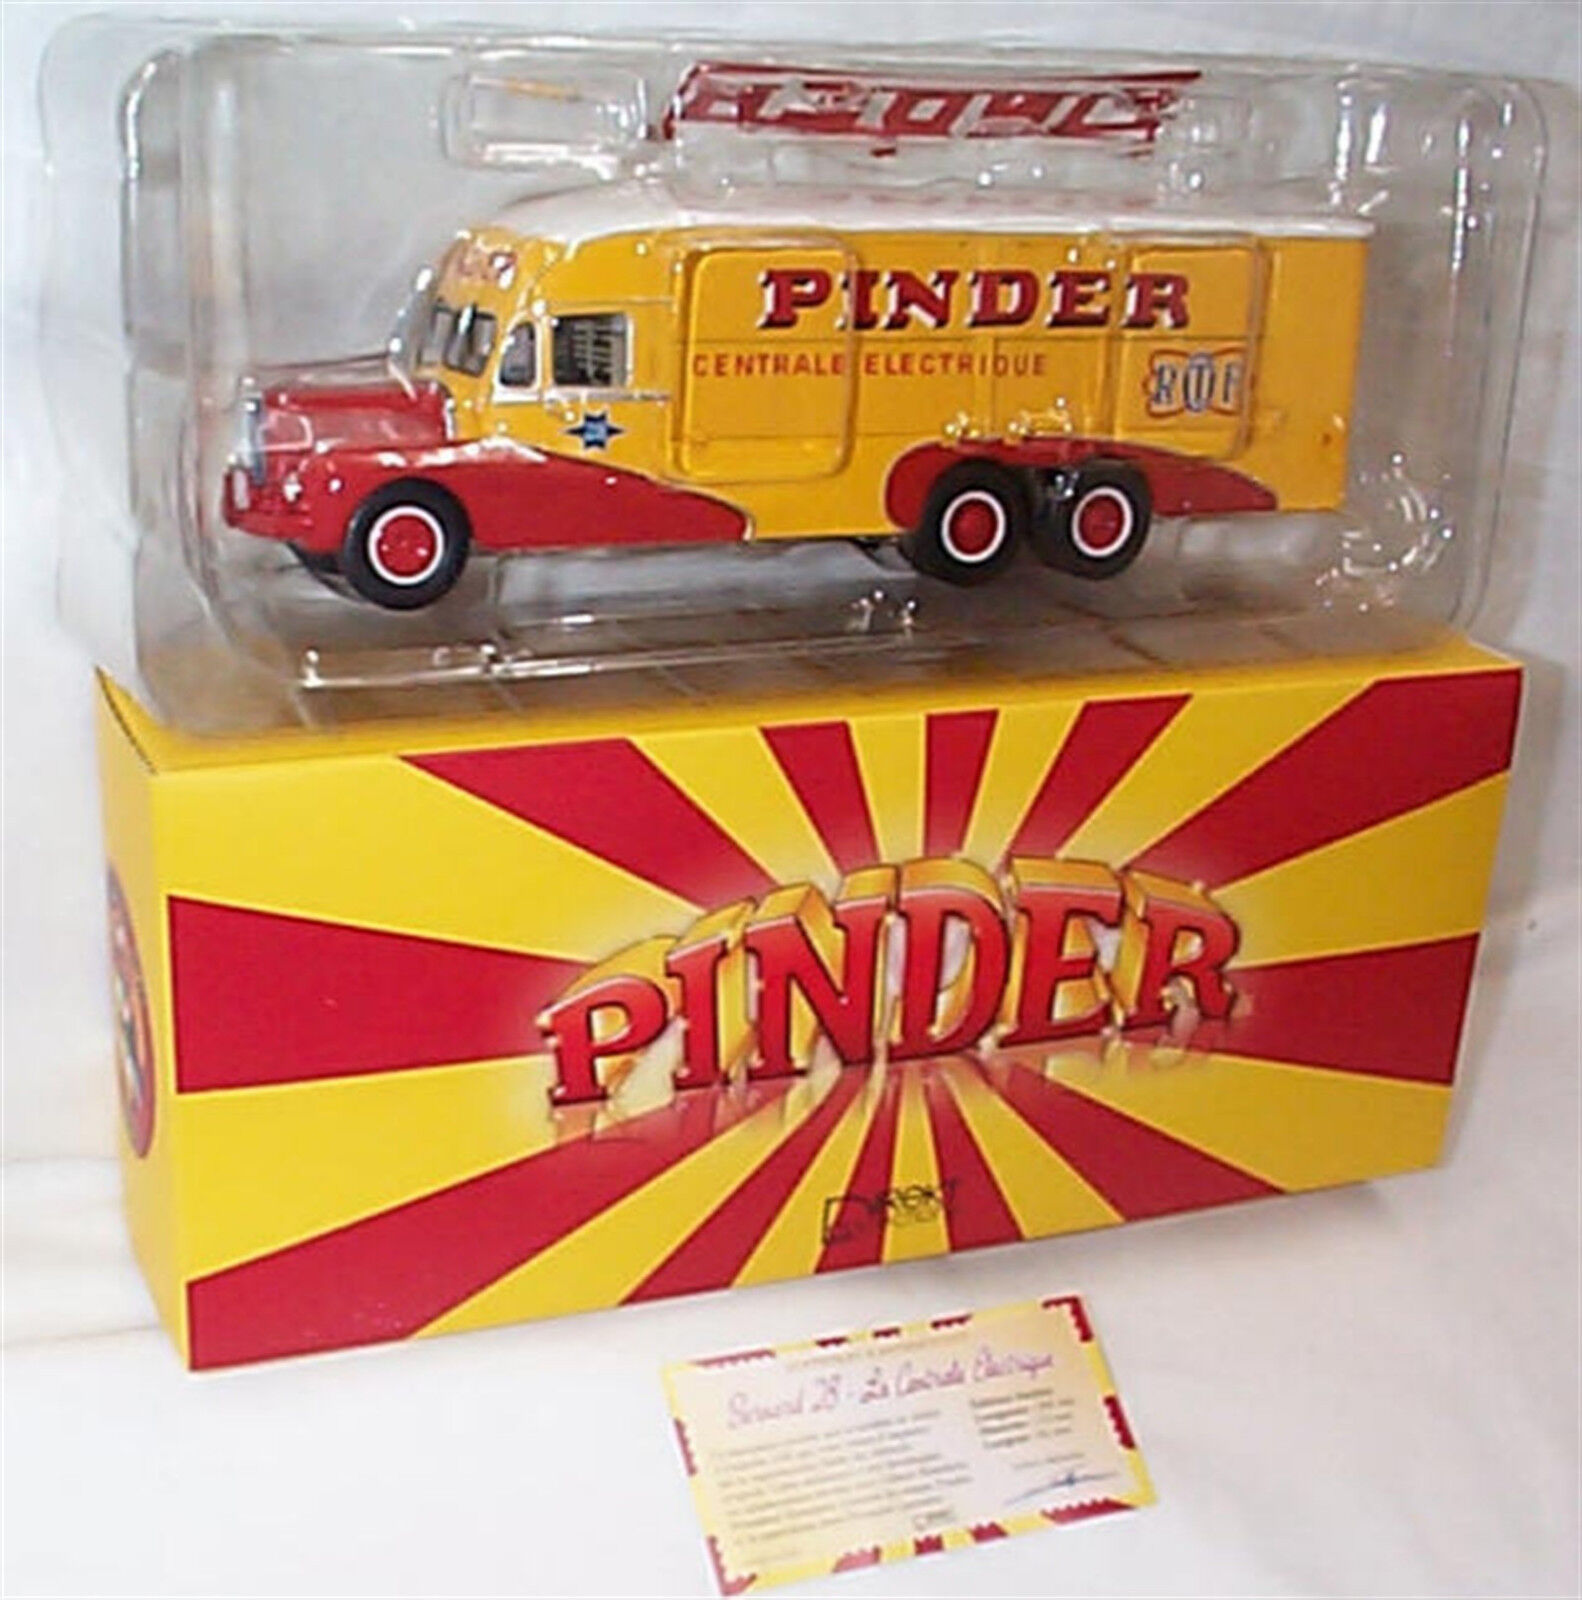 Pinder Circus Bernard 28 Electrical 1-43 scale New in Box Direkt Collection